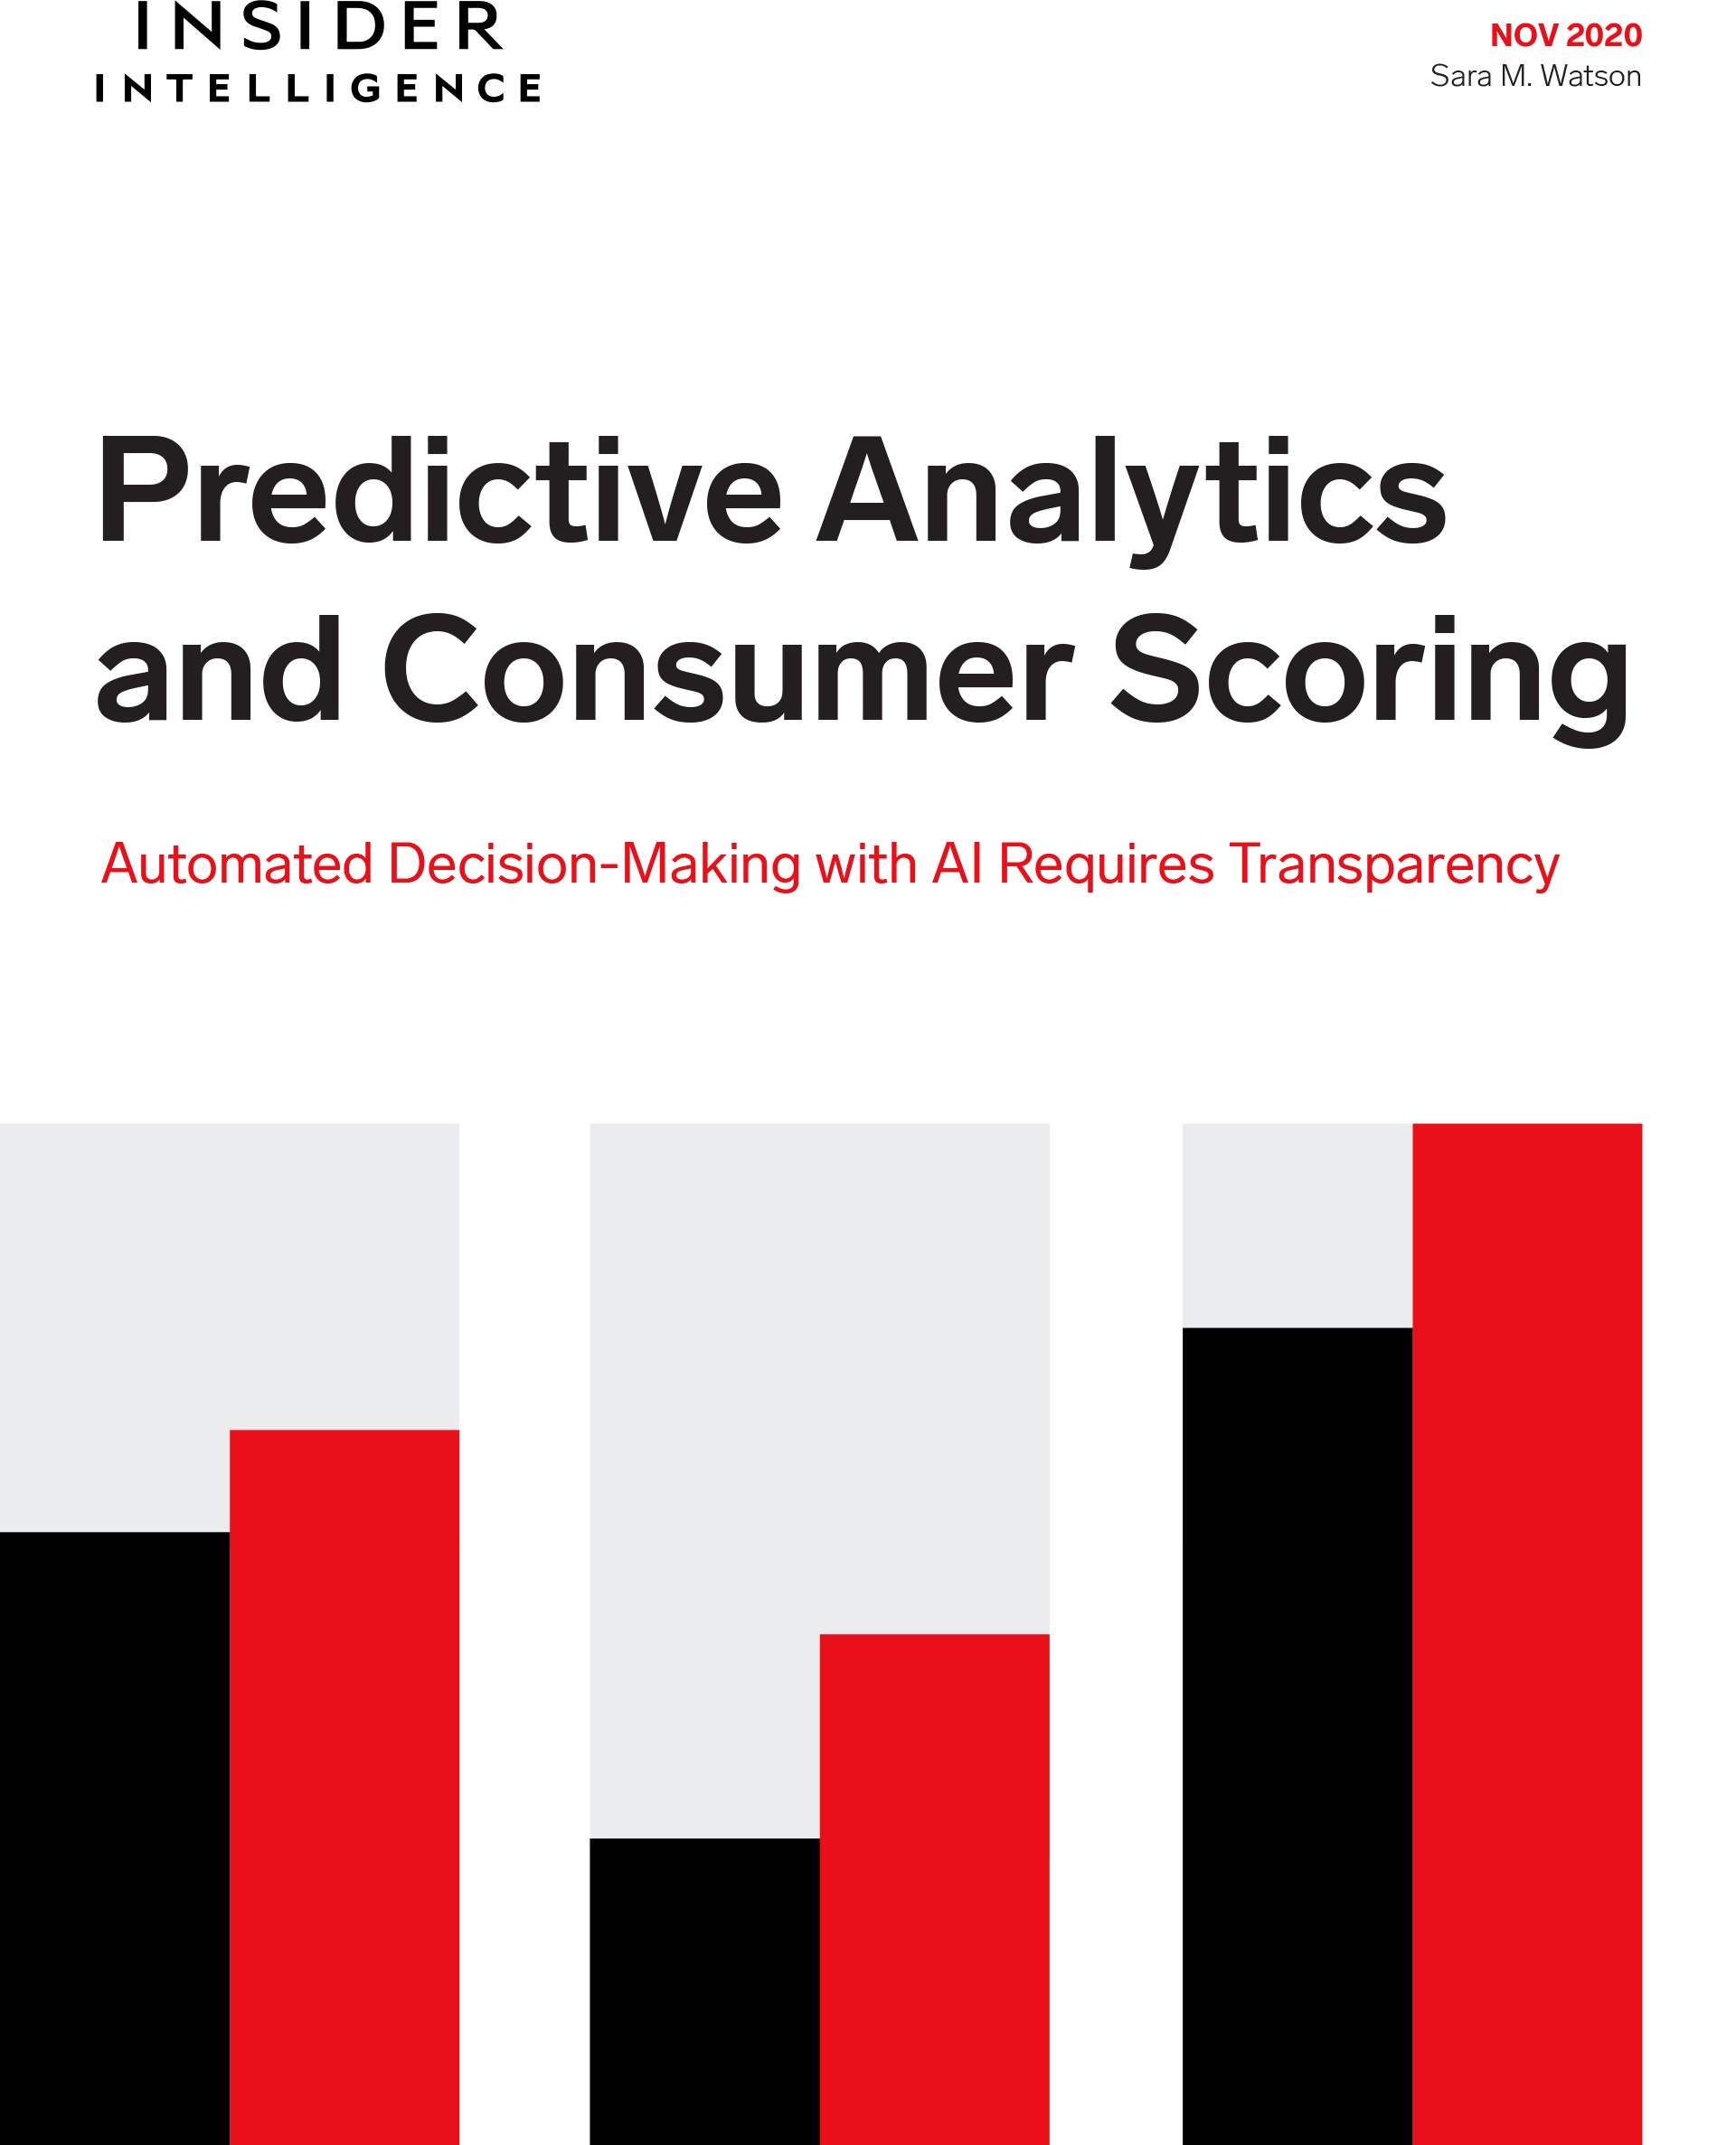 Predictive Analytics and Consumer Scoring